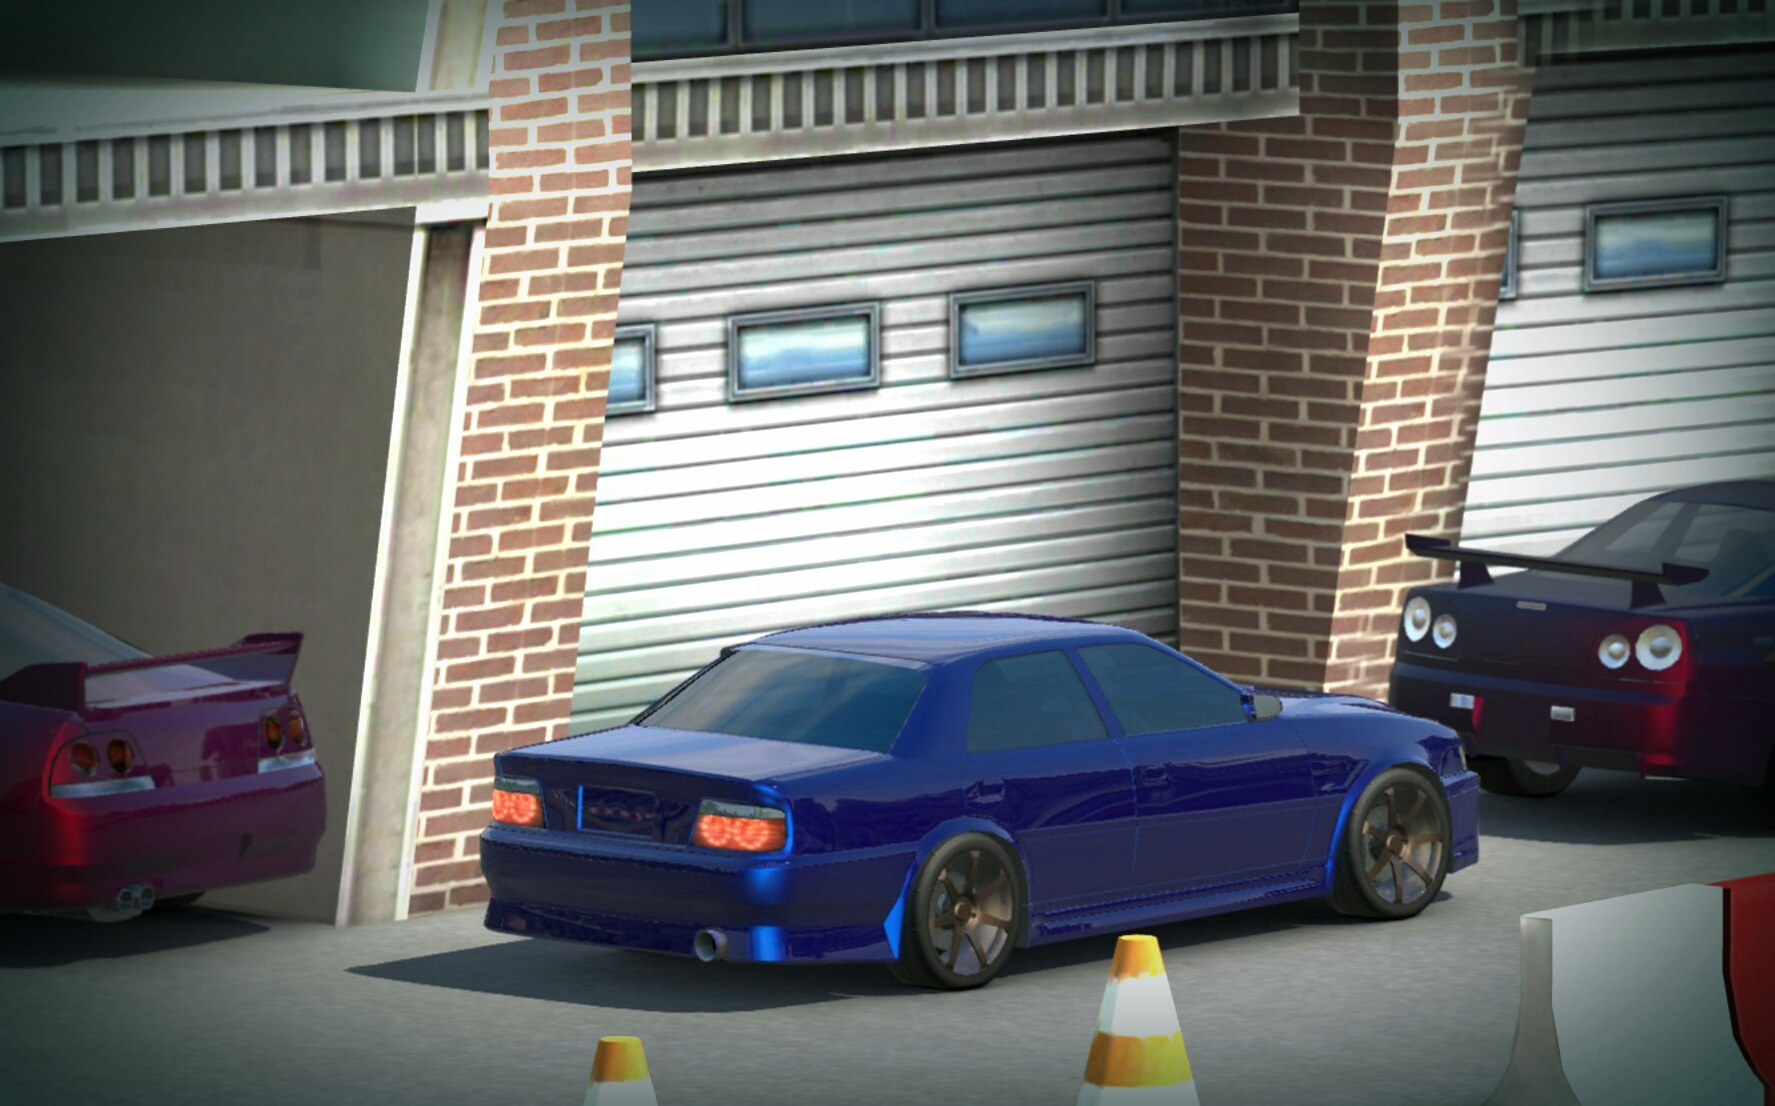 TOYOTA CHASER cars coupe modified wallpaper | 1920x1280 | 871189 ...